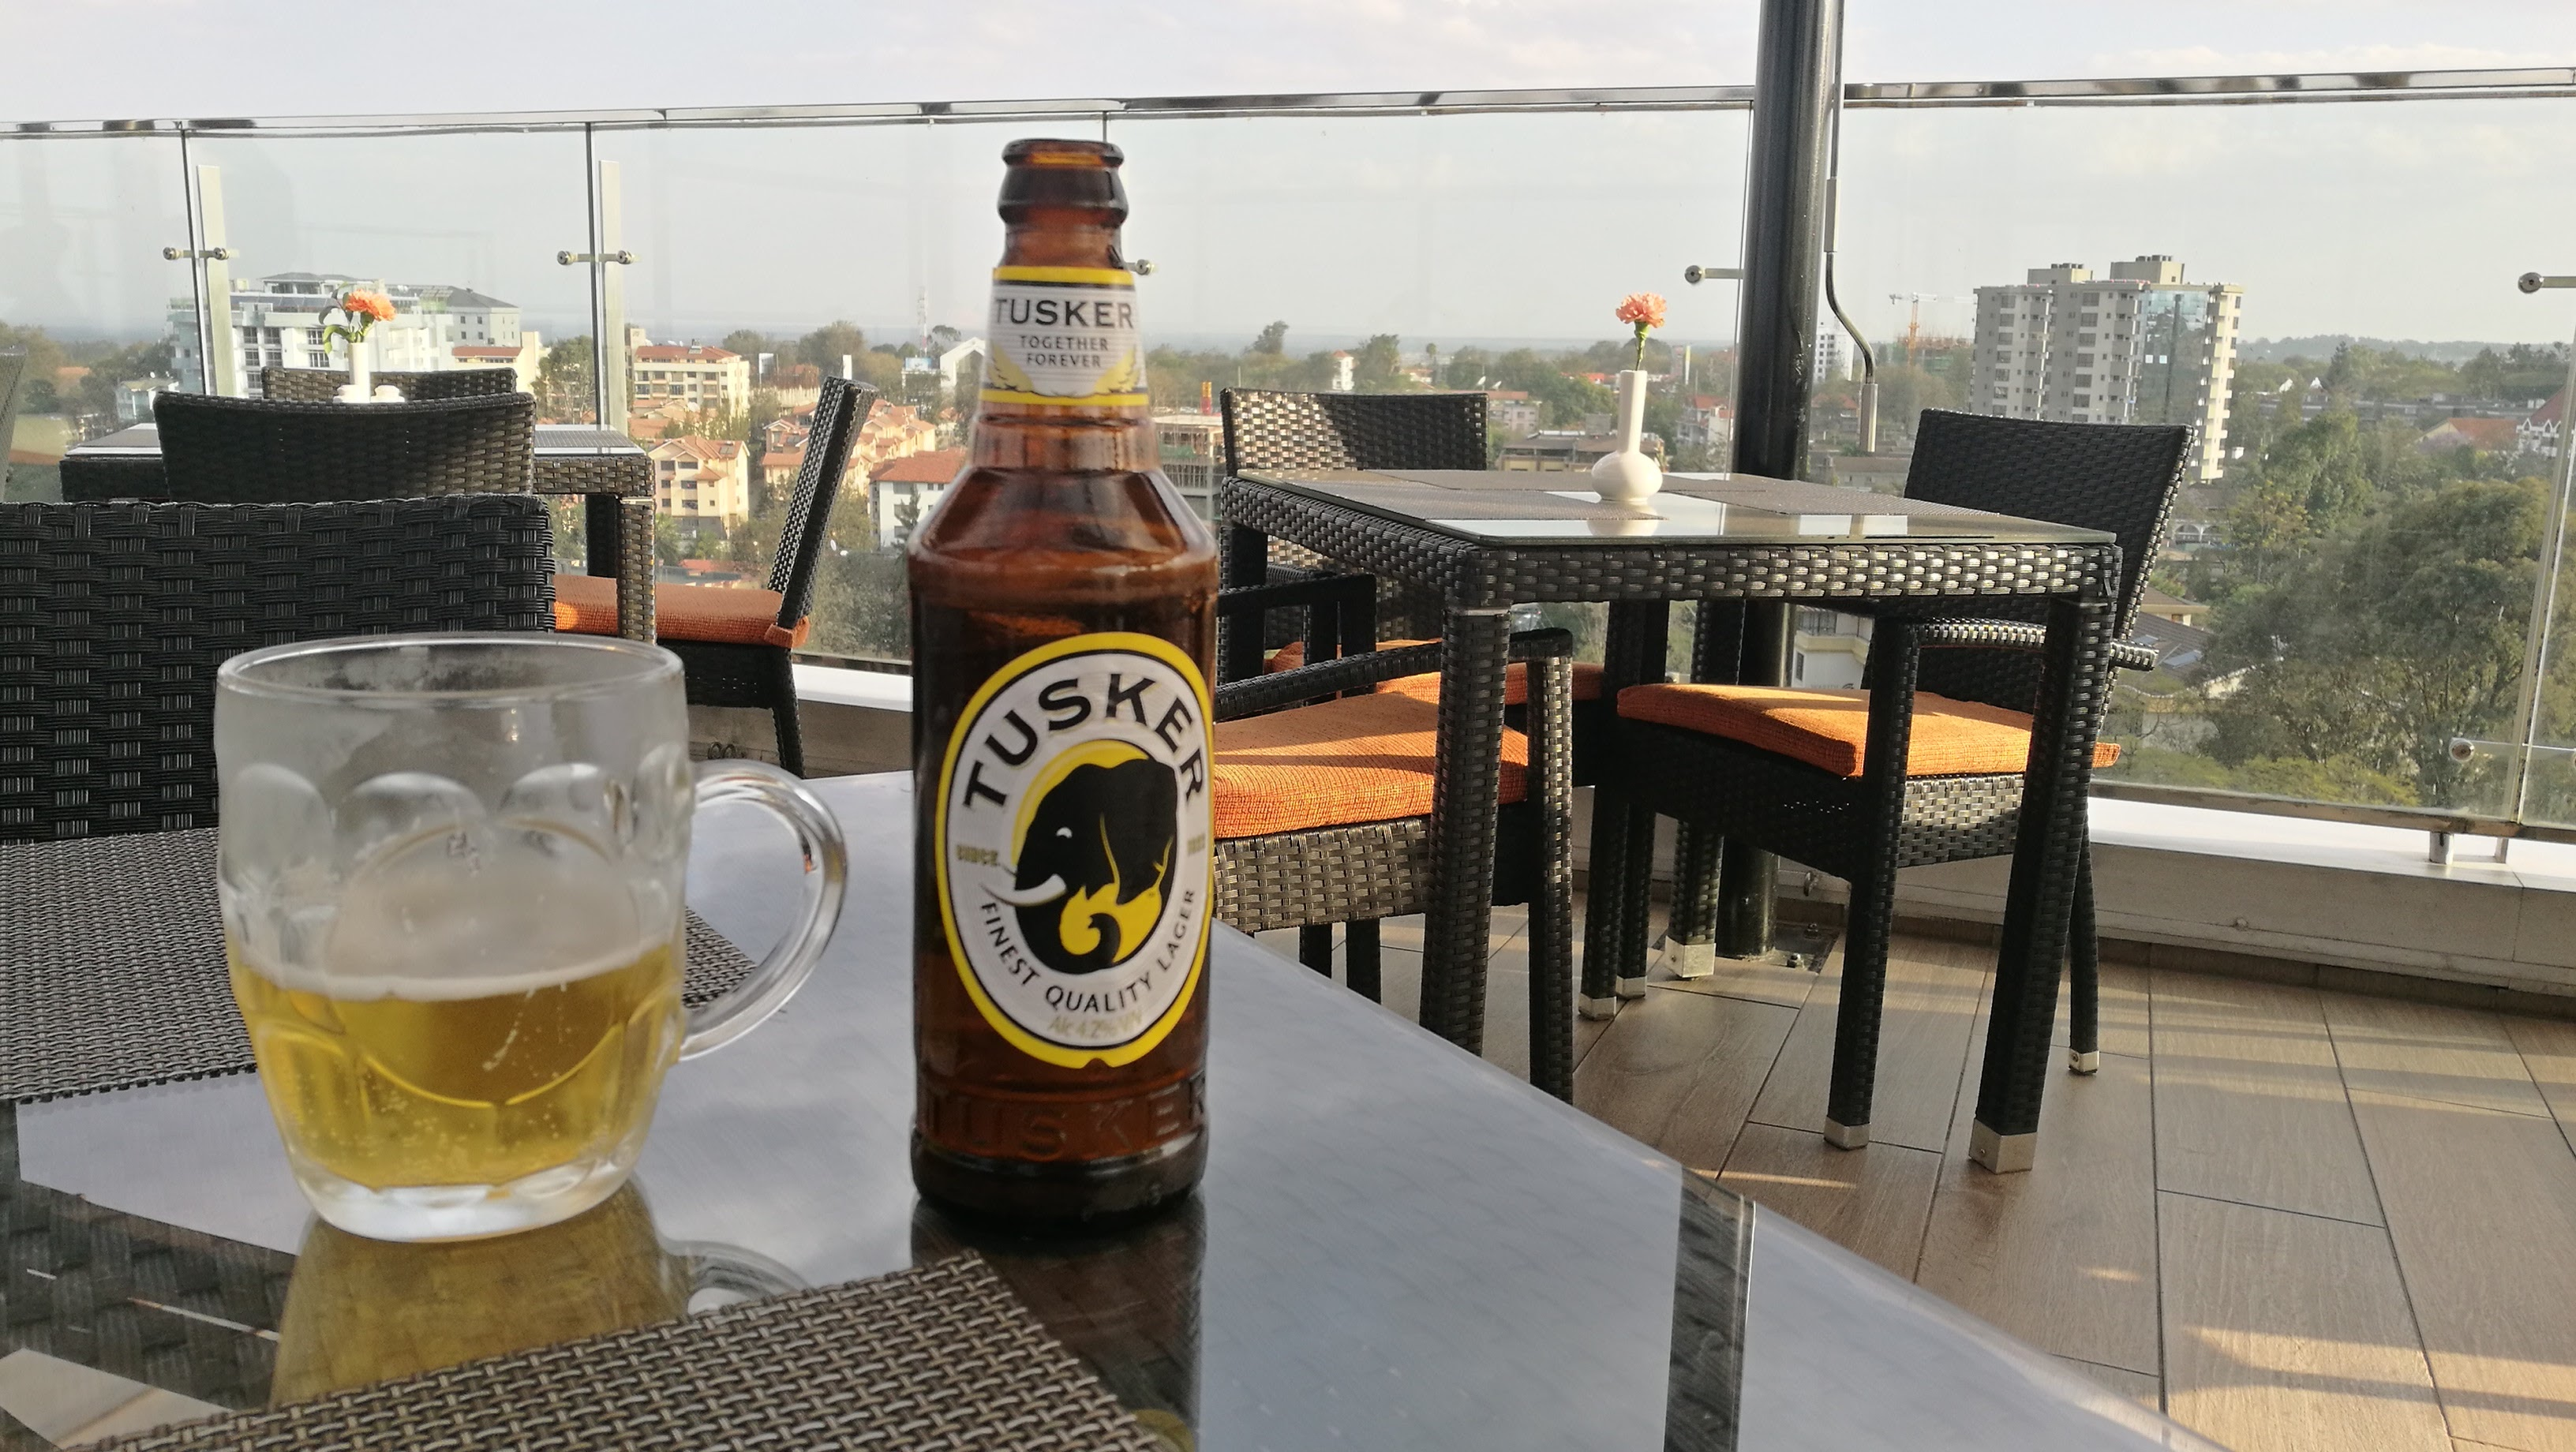 tusker at four points The Ultimate Layover Drinking Guide To Nairobi